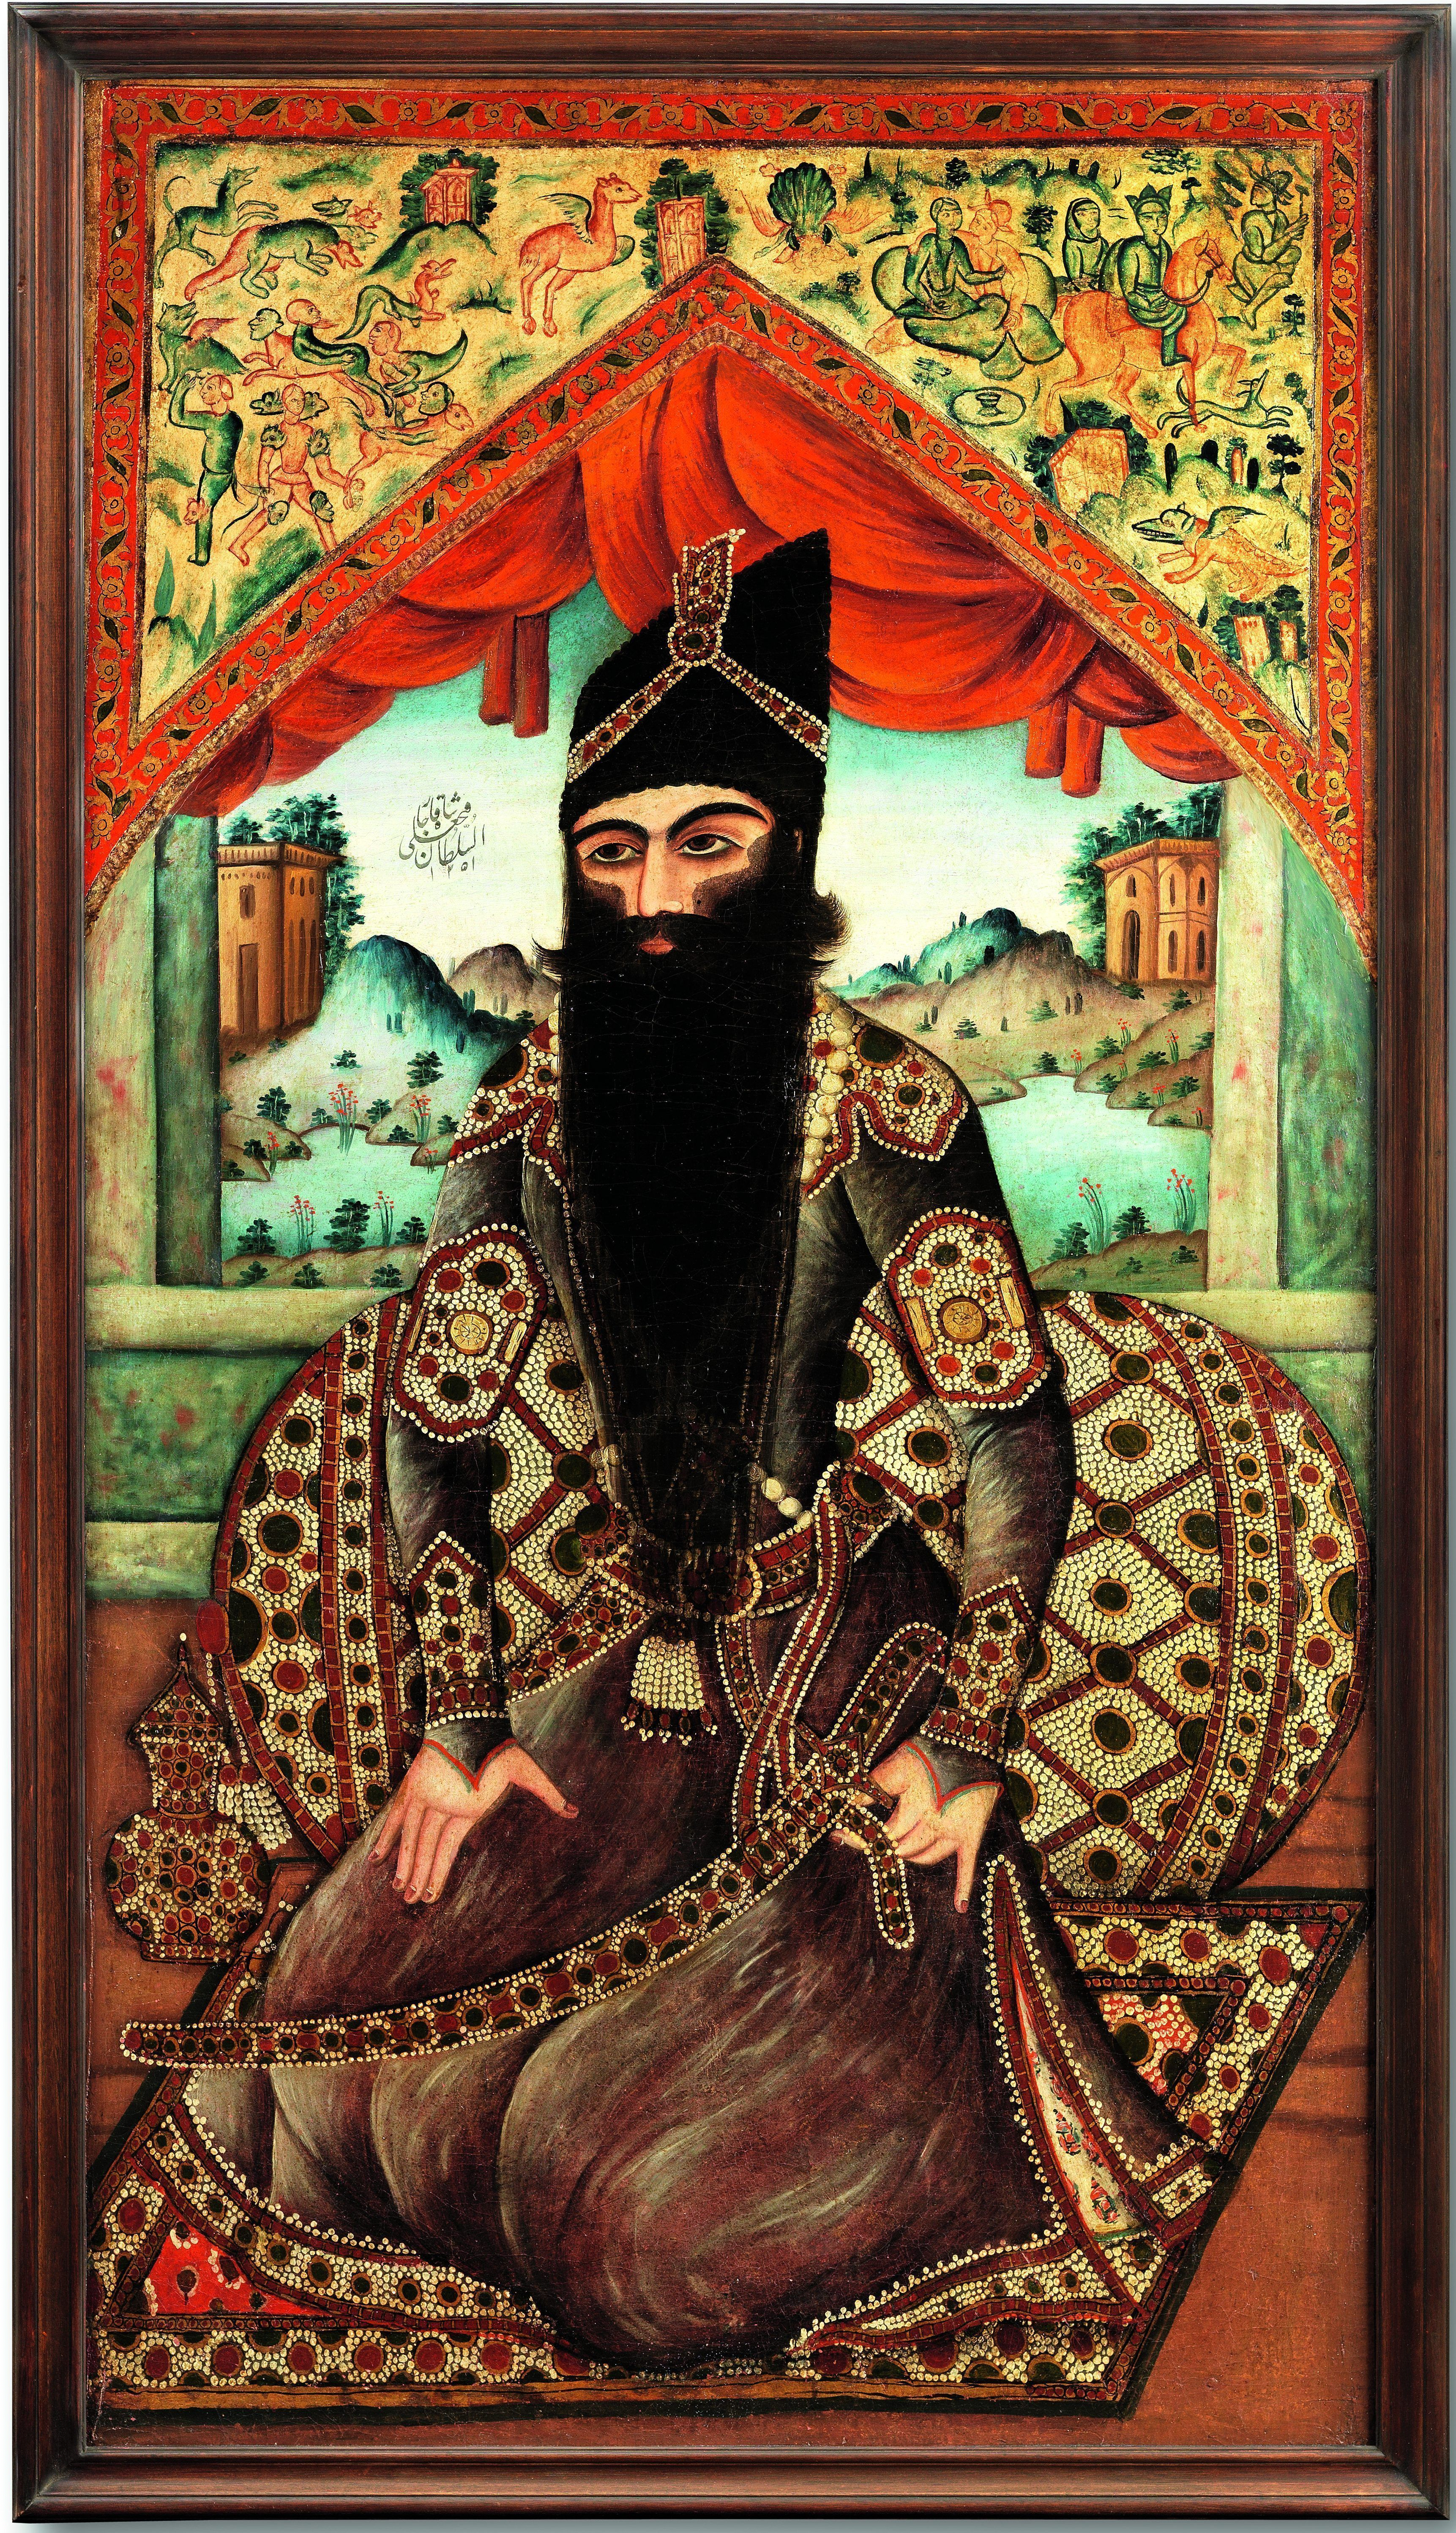 A-PORTRAIT-OF-FATHALI-SHAH-QAJAR-SEATED-AGAINST-A-JEWELLED-BOLSTER-FROM-THE-COURT-WORKSHOP-e1556283907567